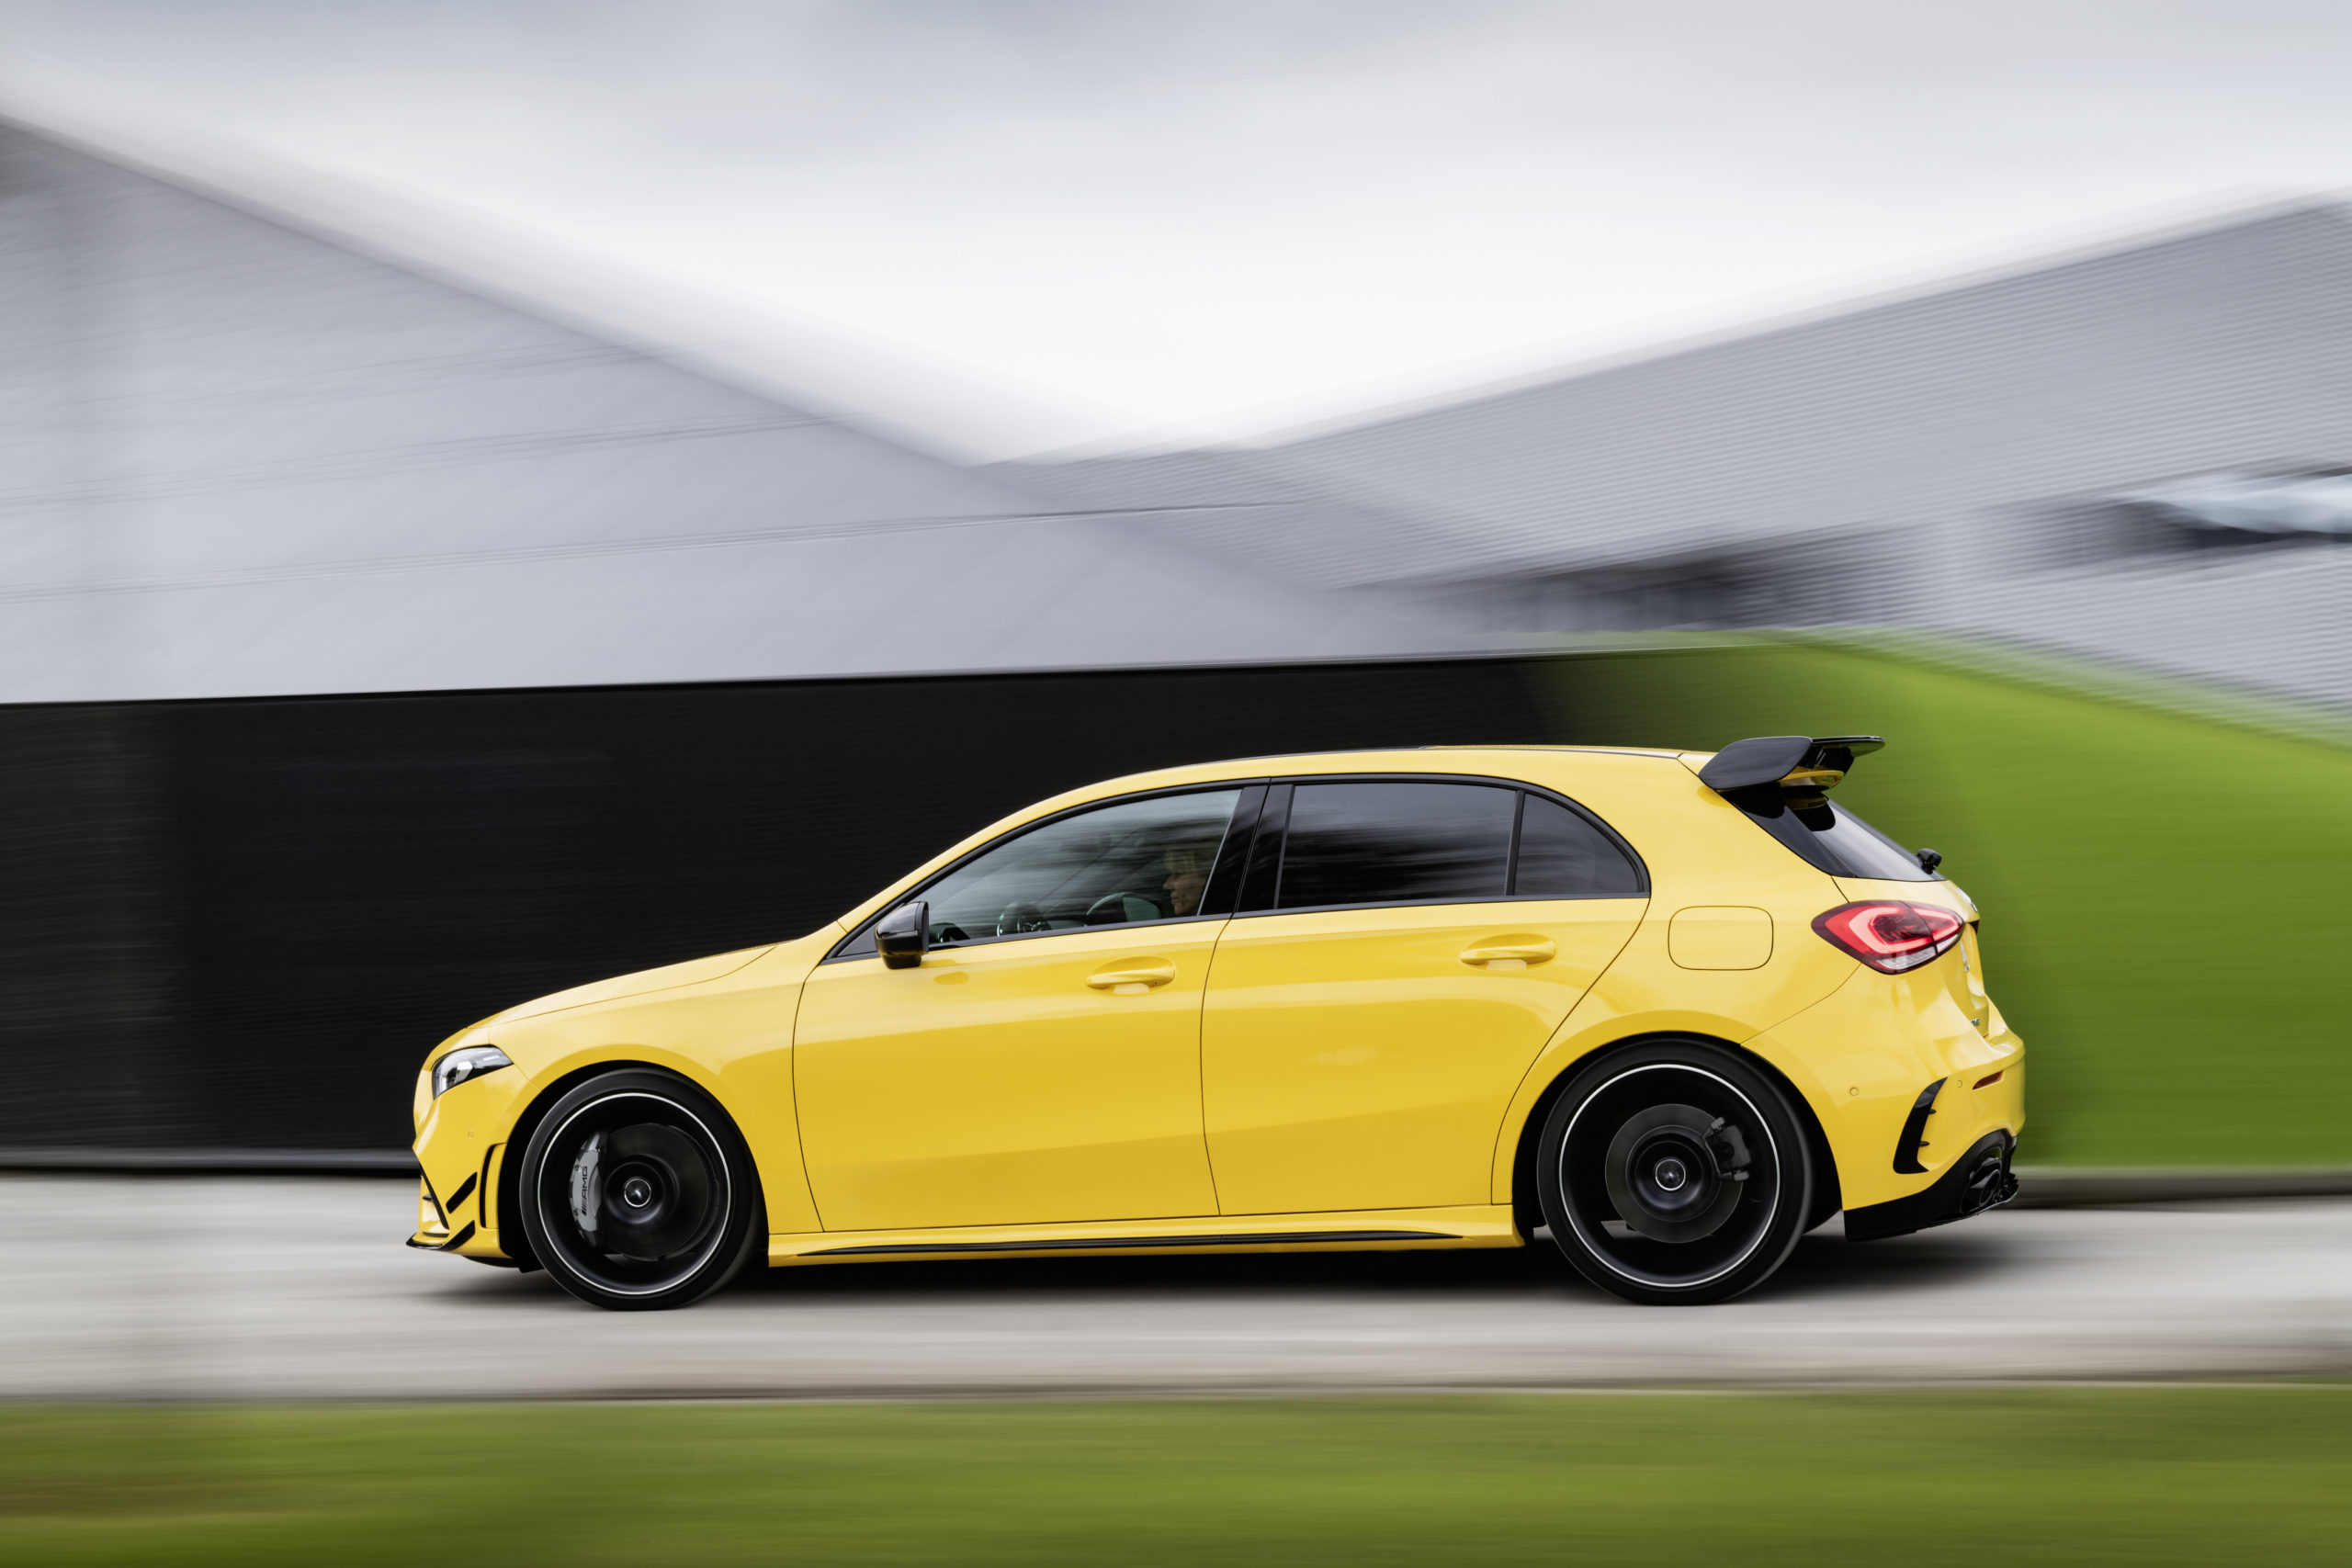 Mercedes AMG is a compact luxury car